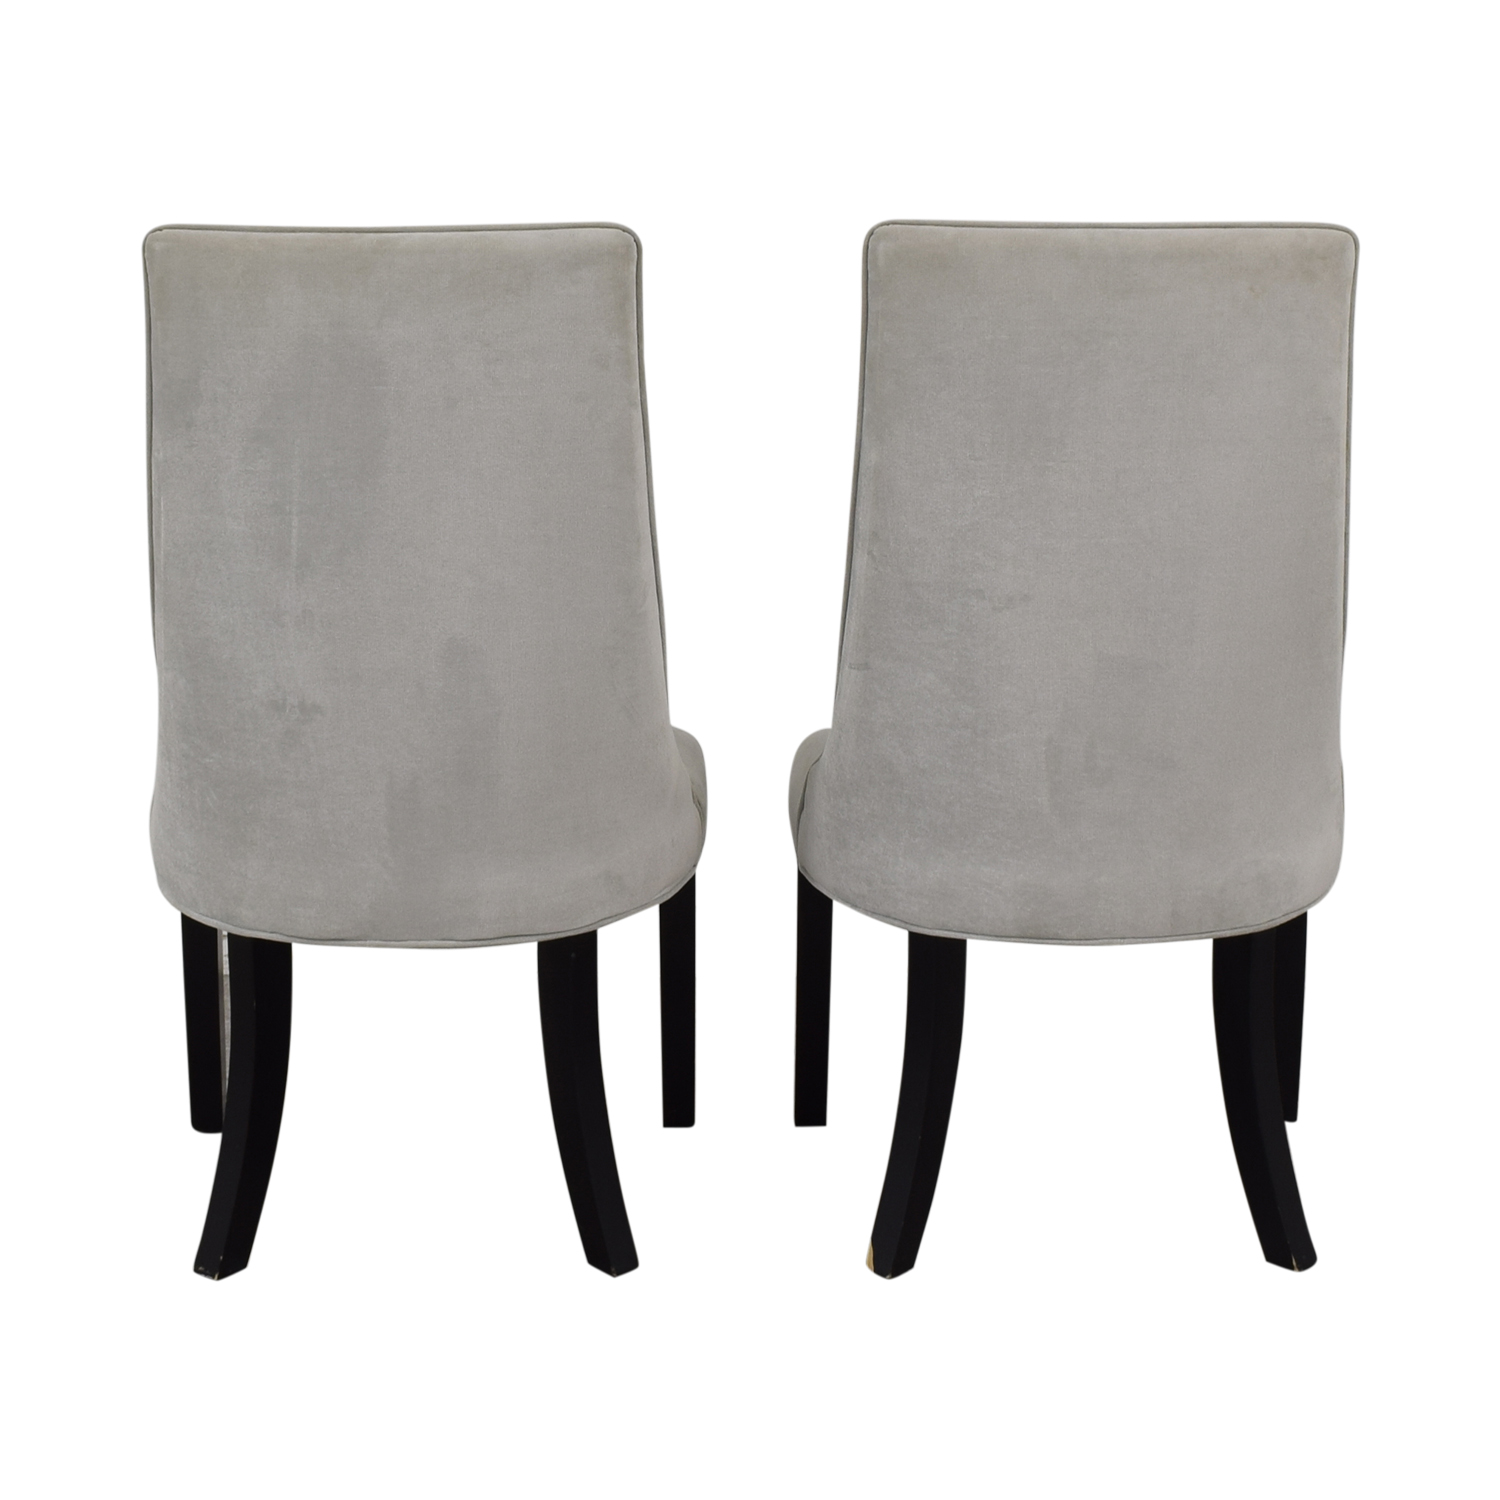 Structube Stools 81 Off Structube Velvet Parsons Chairs Chairs